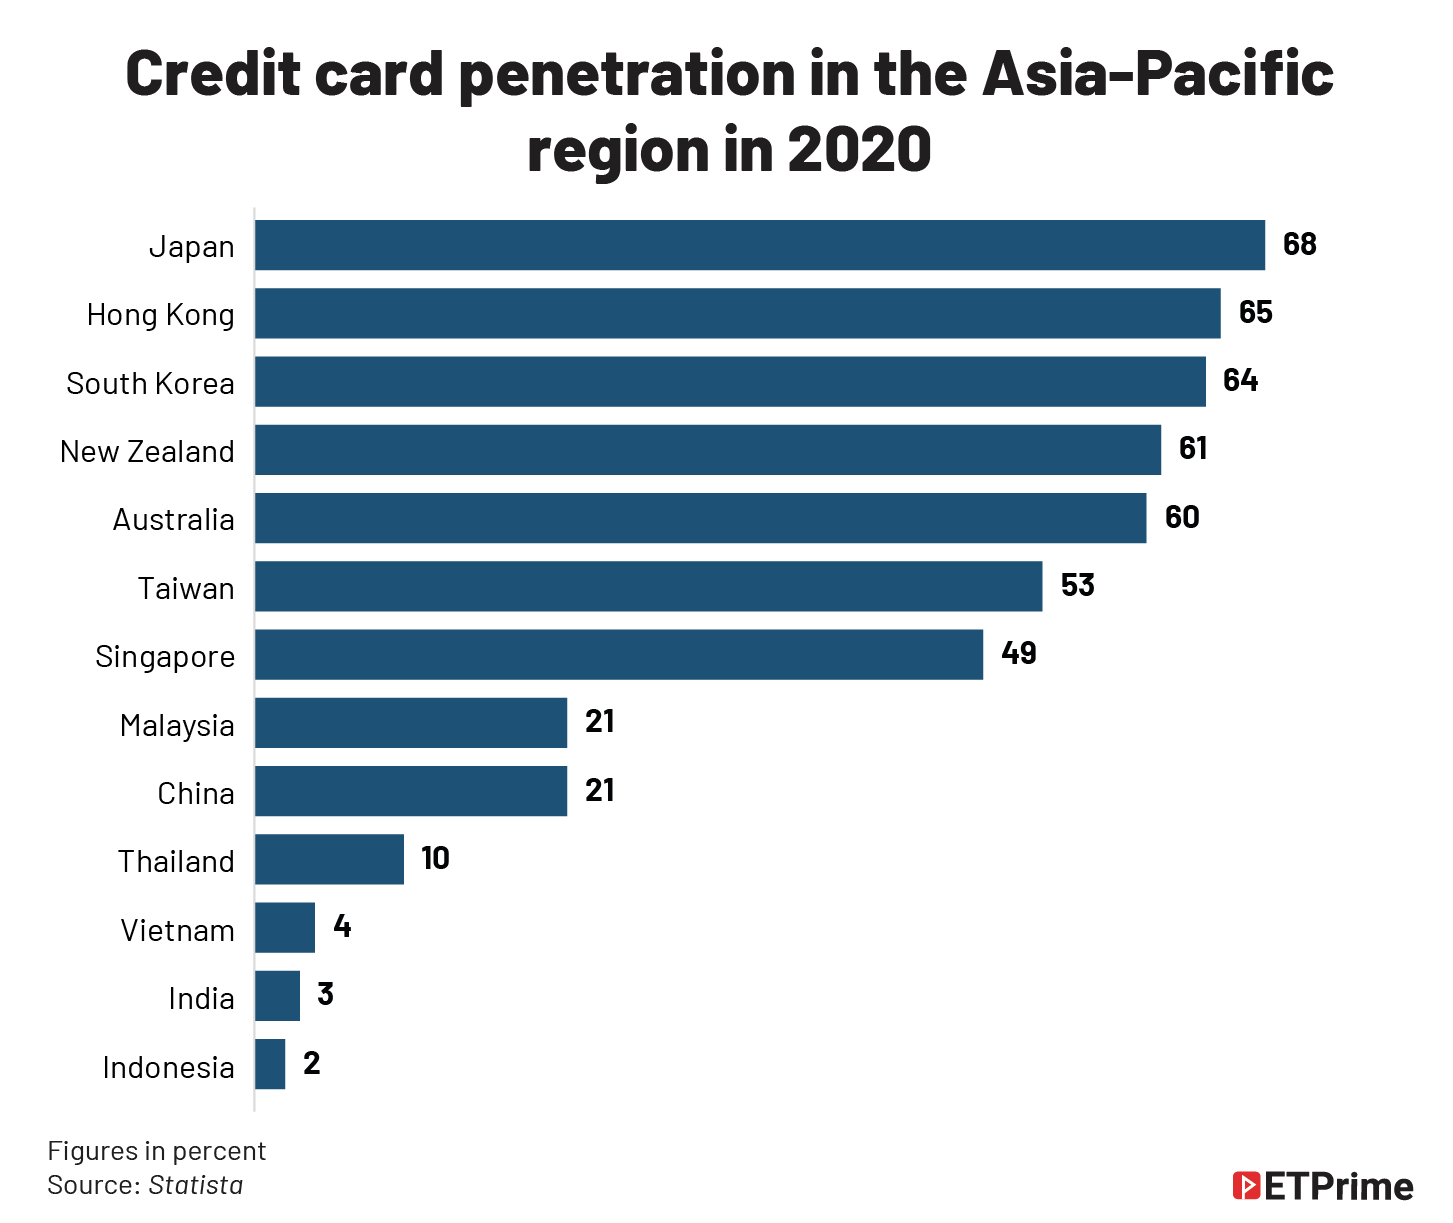 Credit card penetration in the Asia-Pacific region in 2020@2x